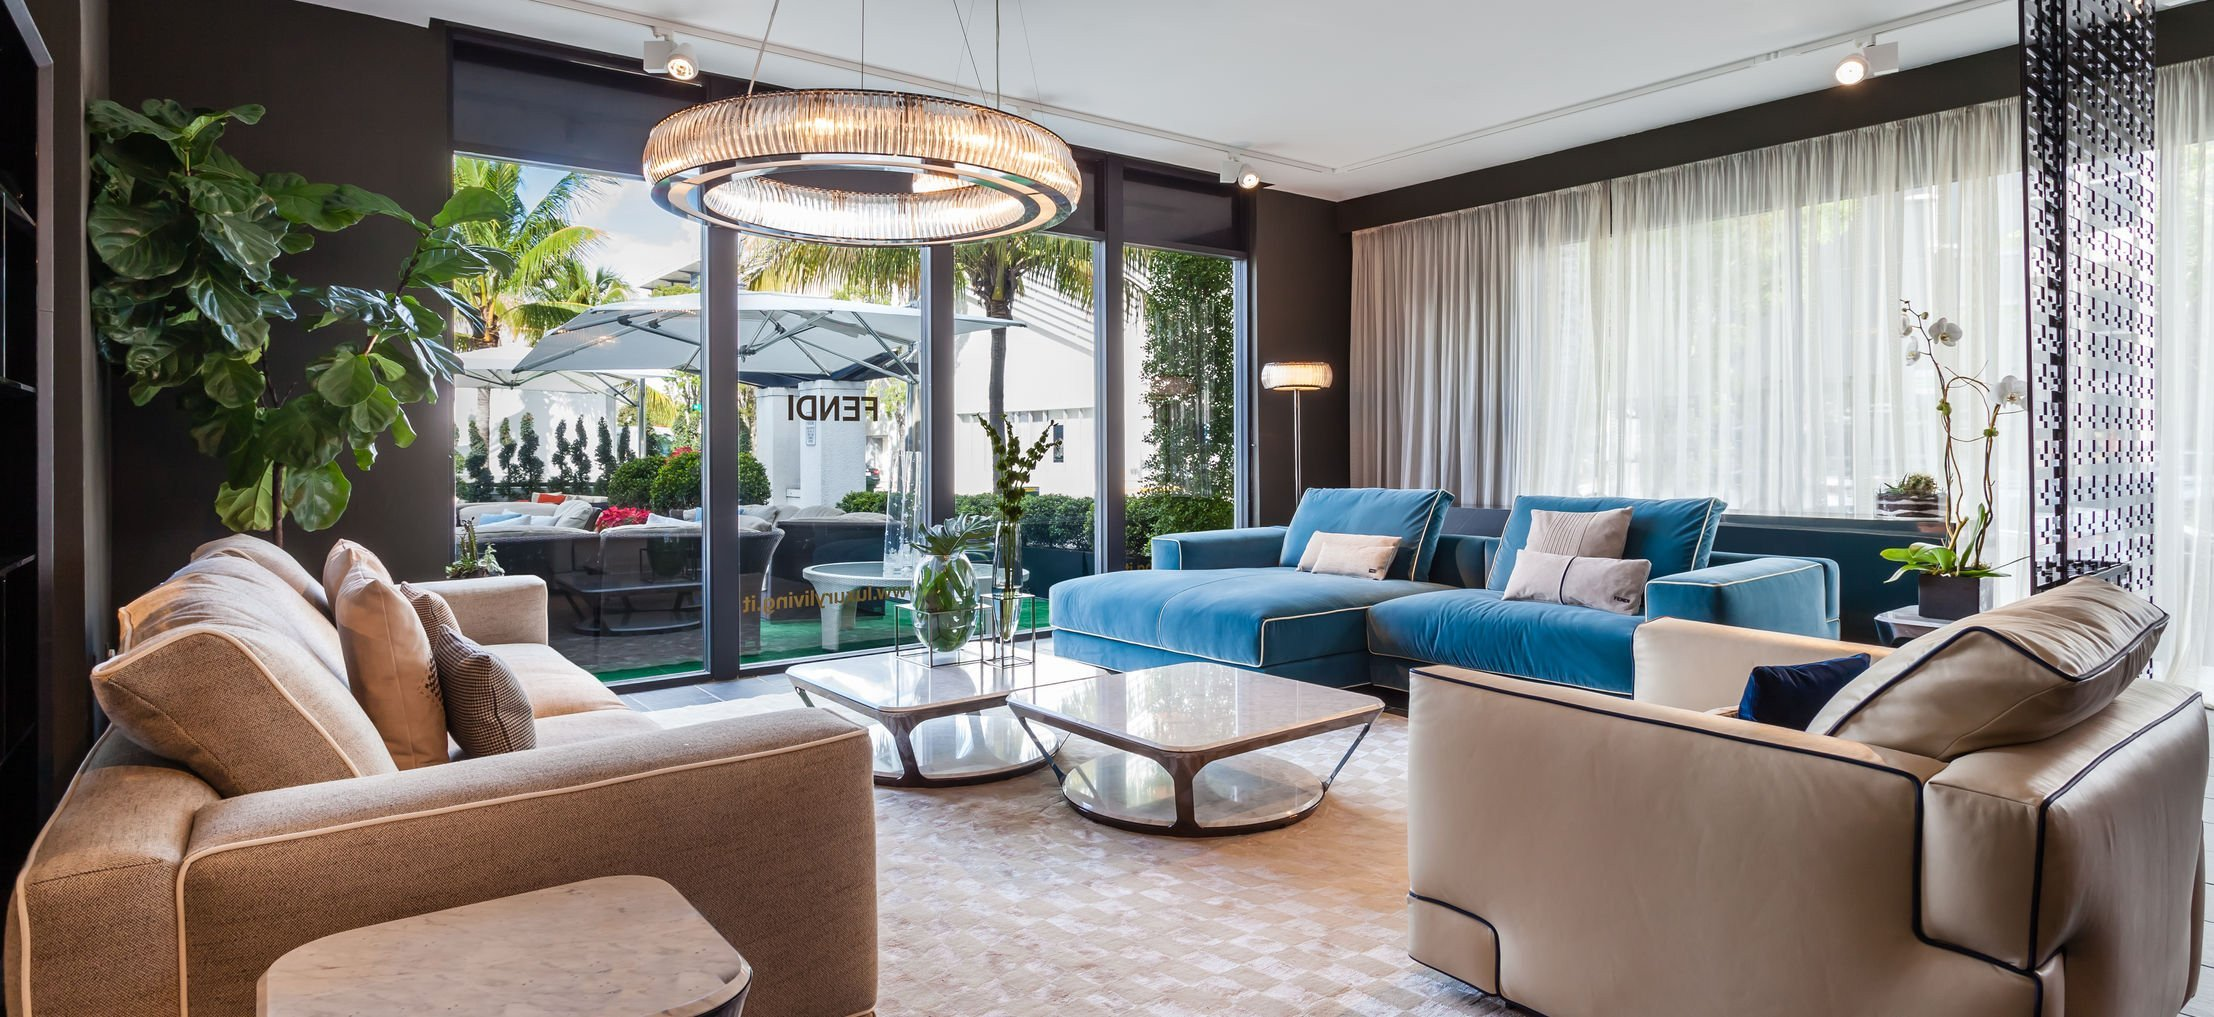 Best Place for Home Decor Elegant the Best Places to Shop for Chic Home Décor In south Florida